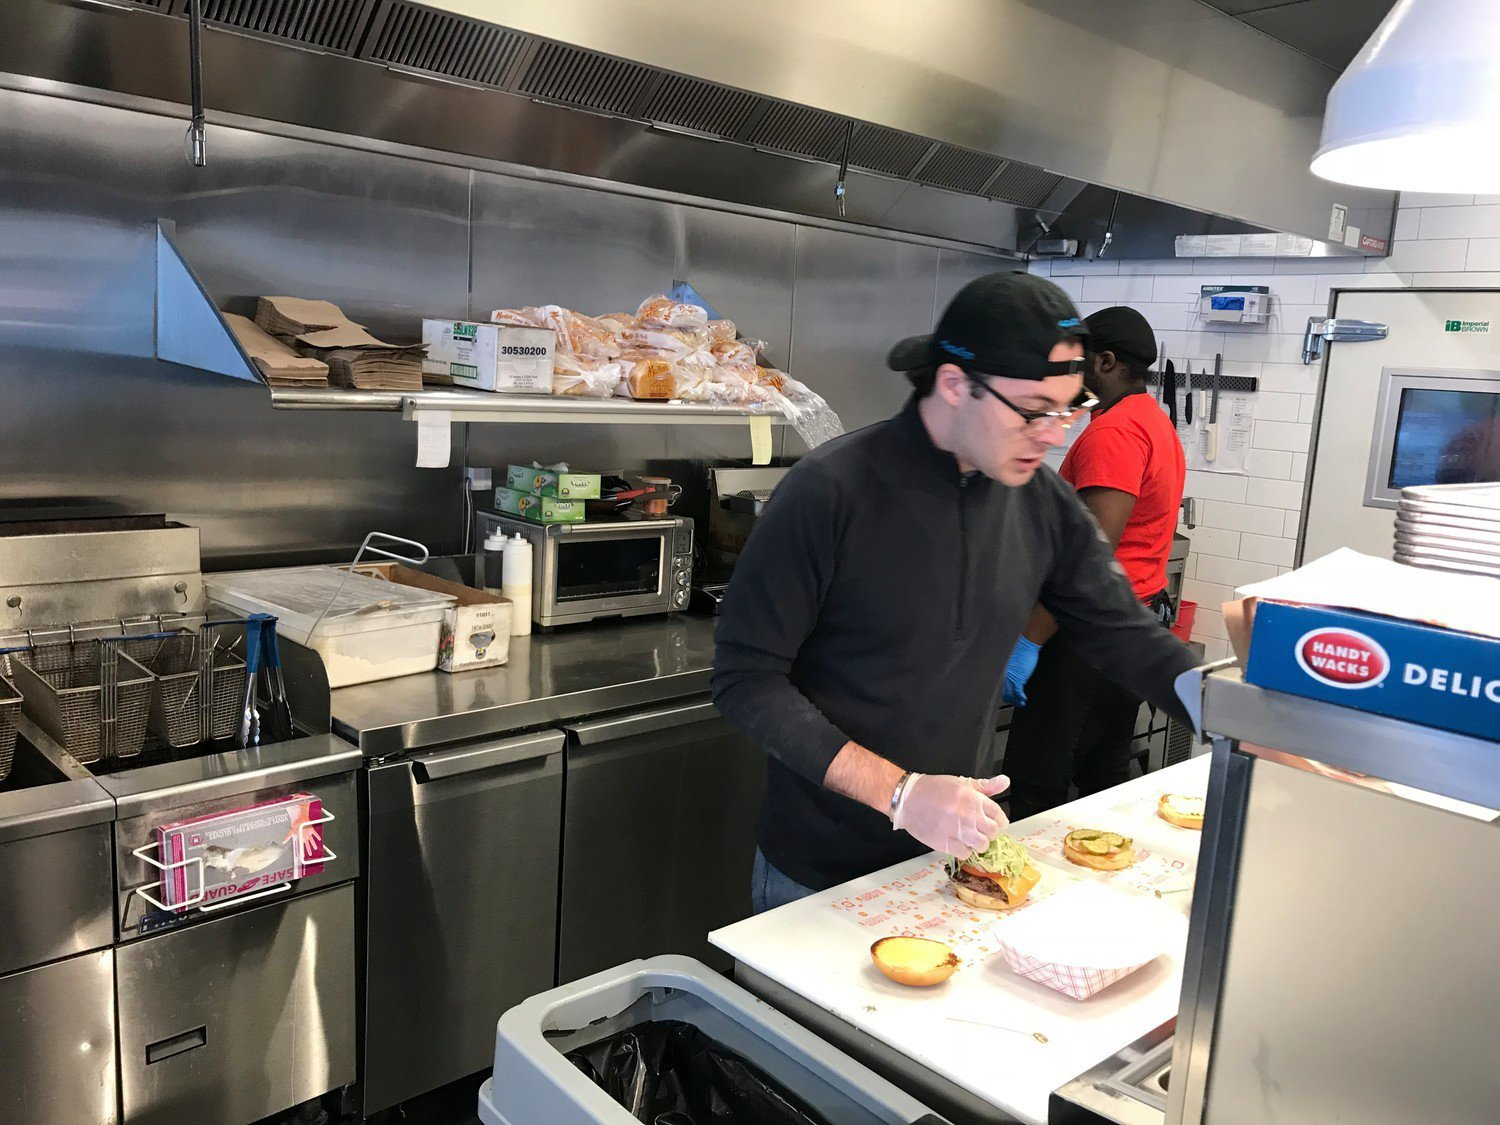 Burger Bandit owner Ryan Straschnow and his staff served about 200 meals to the staff at NYU Winthrop Hospital and homeless shelters on Friday.